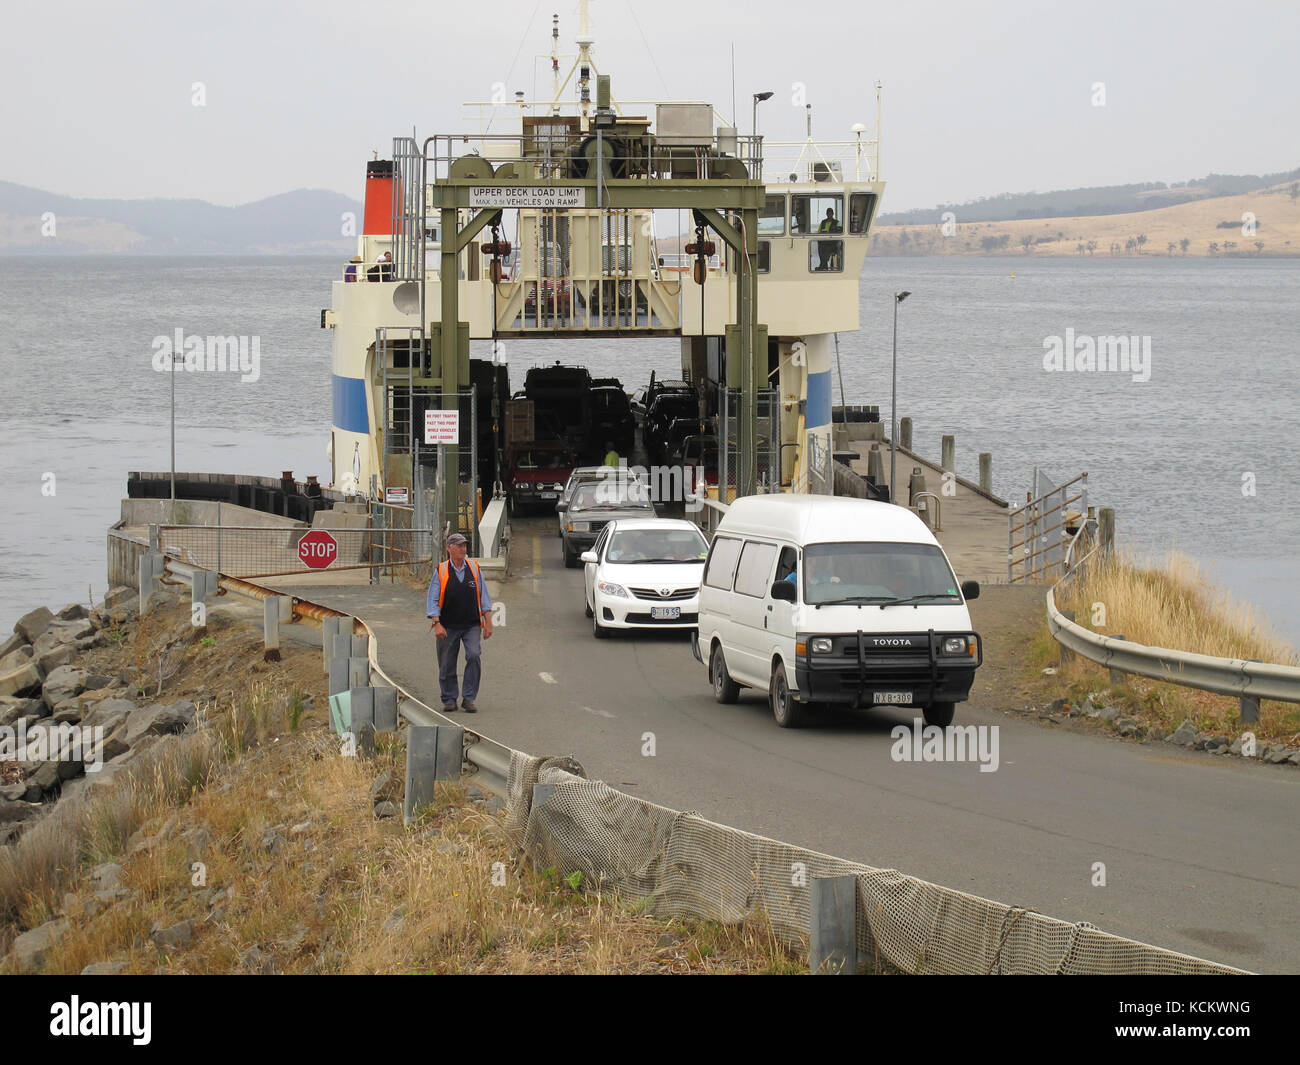 The Bruny Island ferry 'Mirrambeena' unloading passengers and vehicles from Kettering at the terminal on Bruny Island. - Stock Image